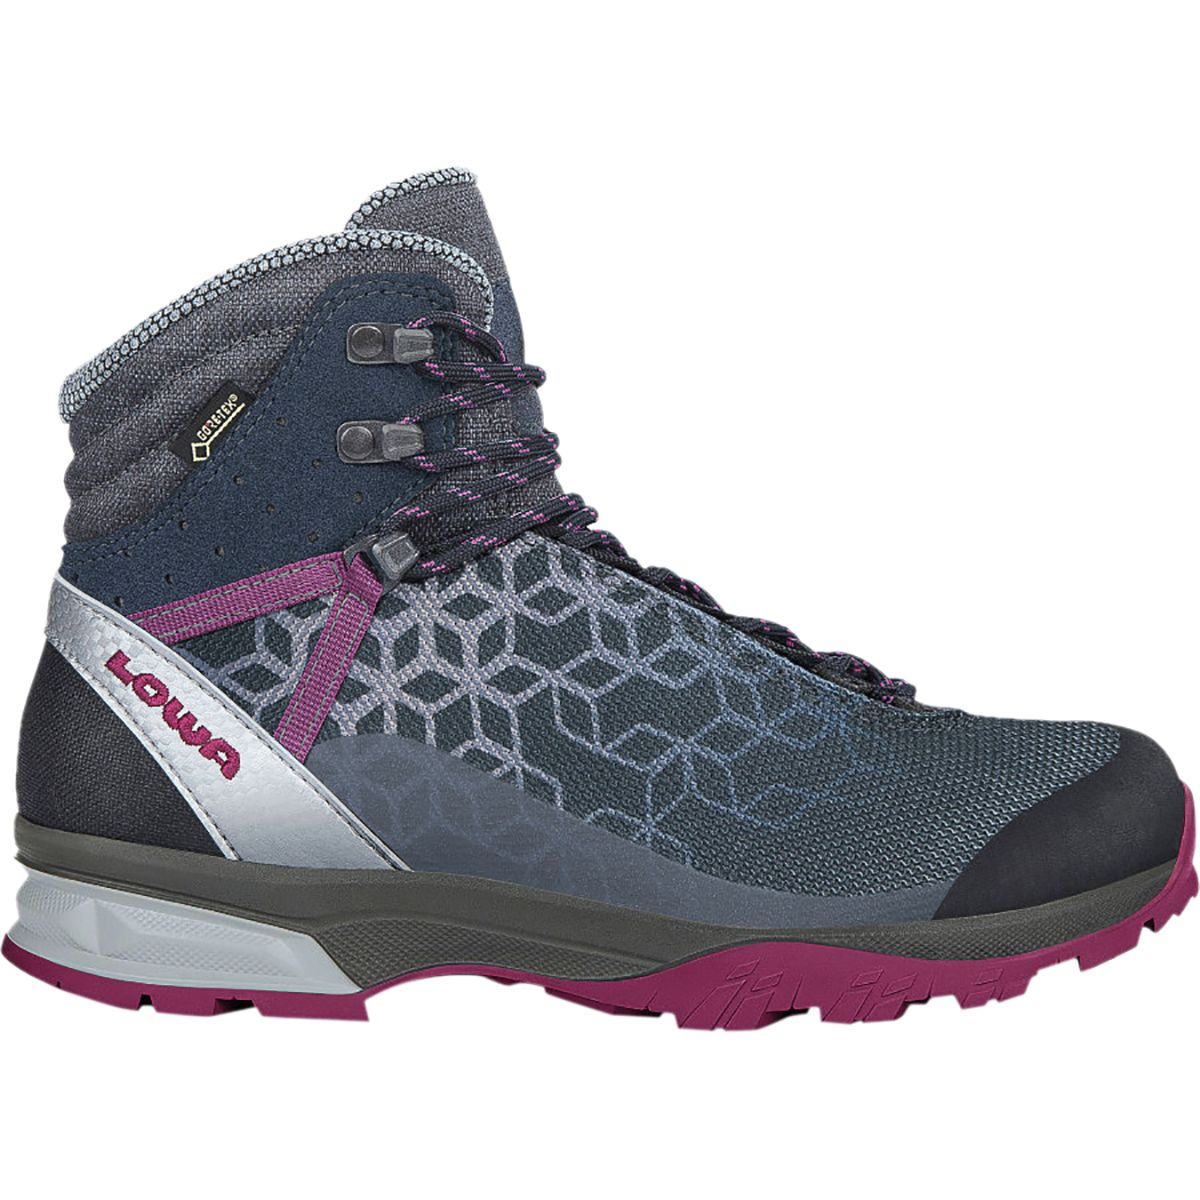 fa0b621bbae The Best Hiking Boots for 2019 - Trailspace